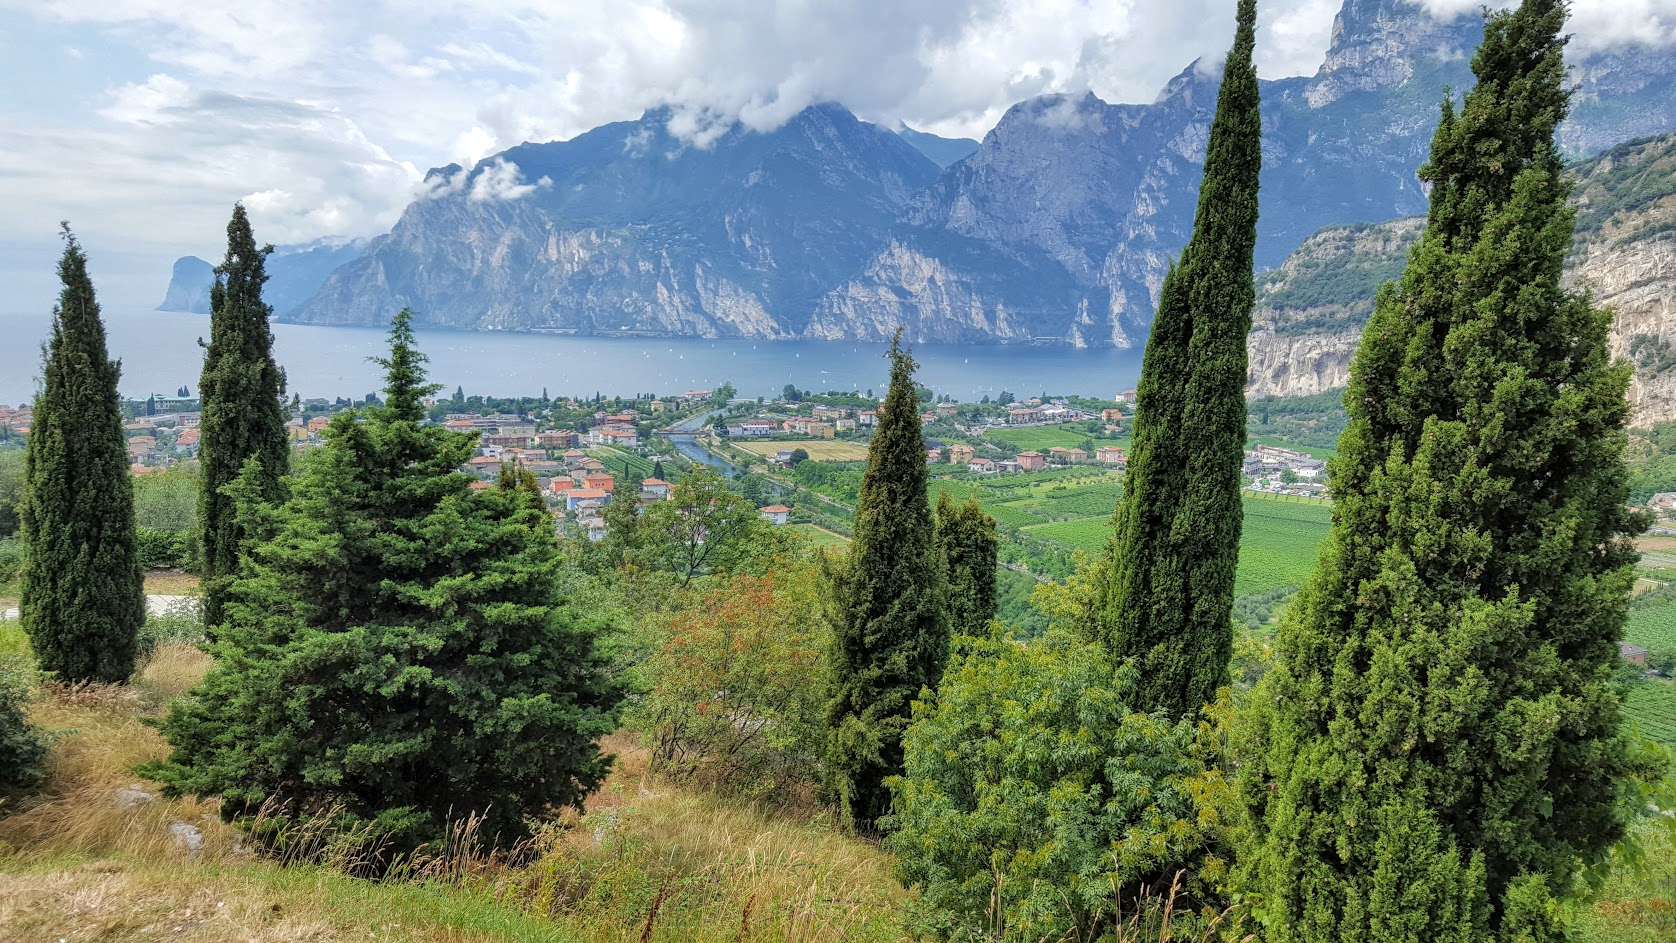 View from above Lake Garda